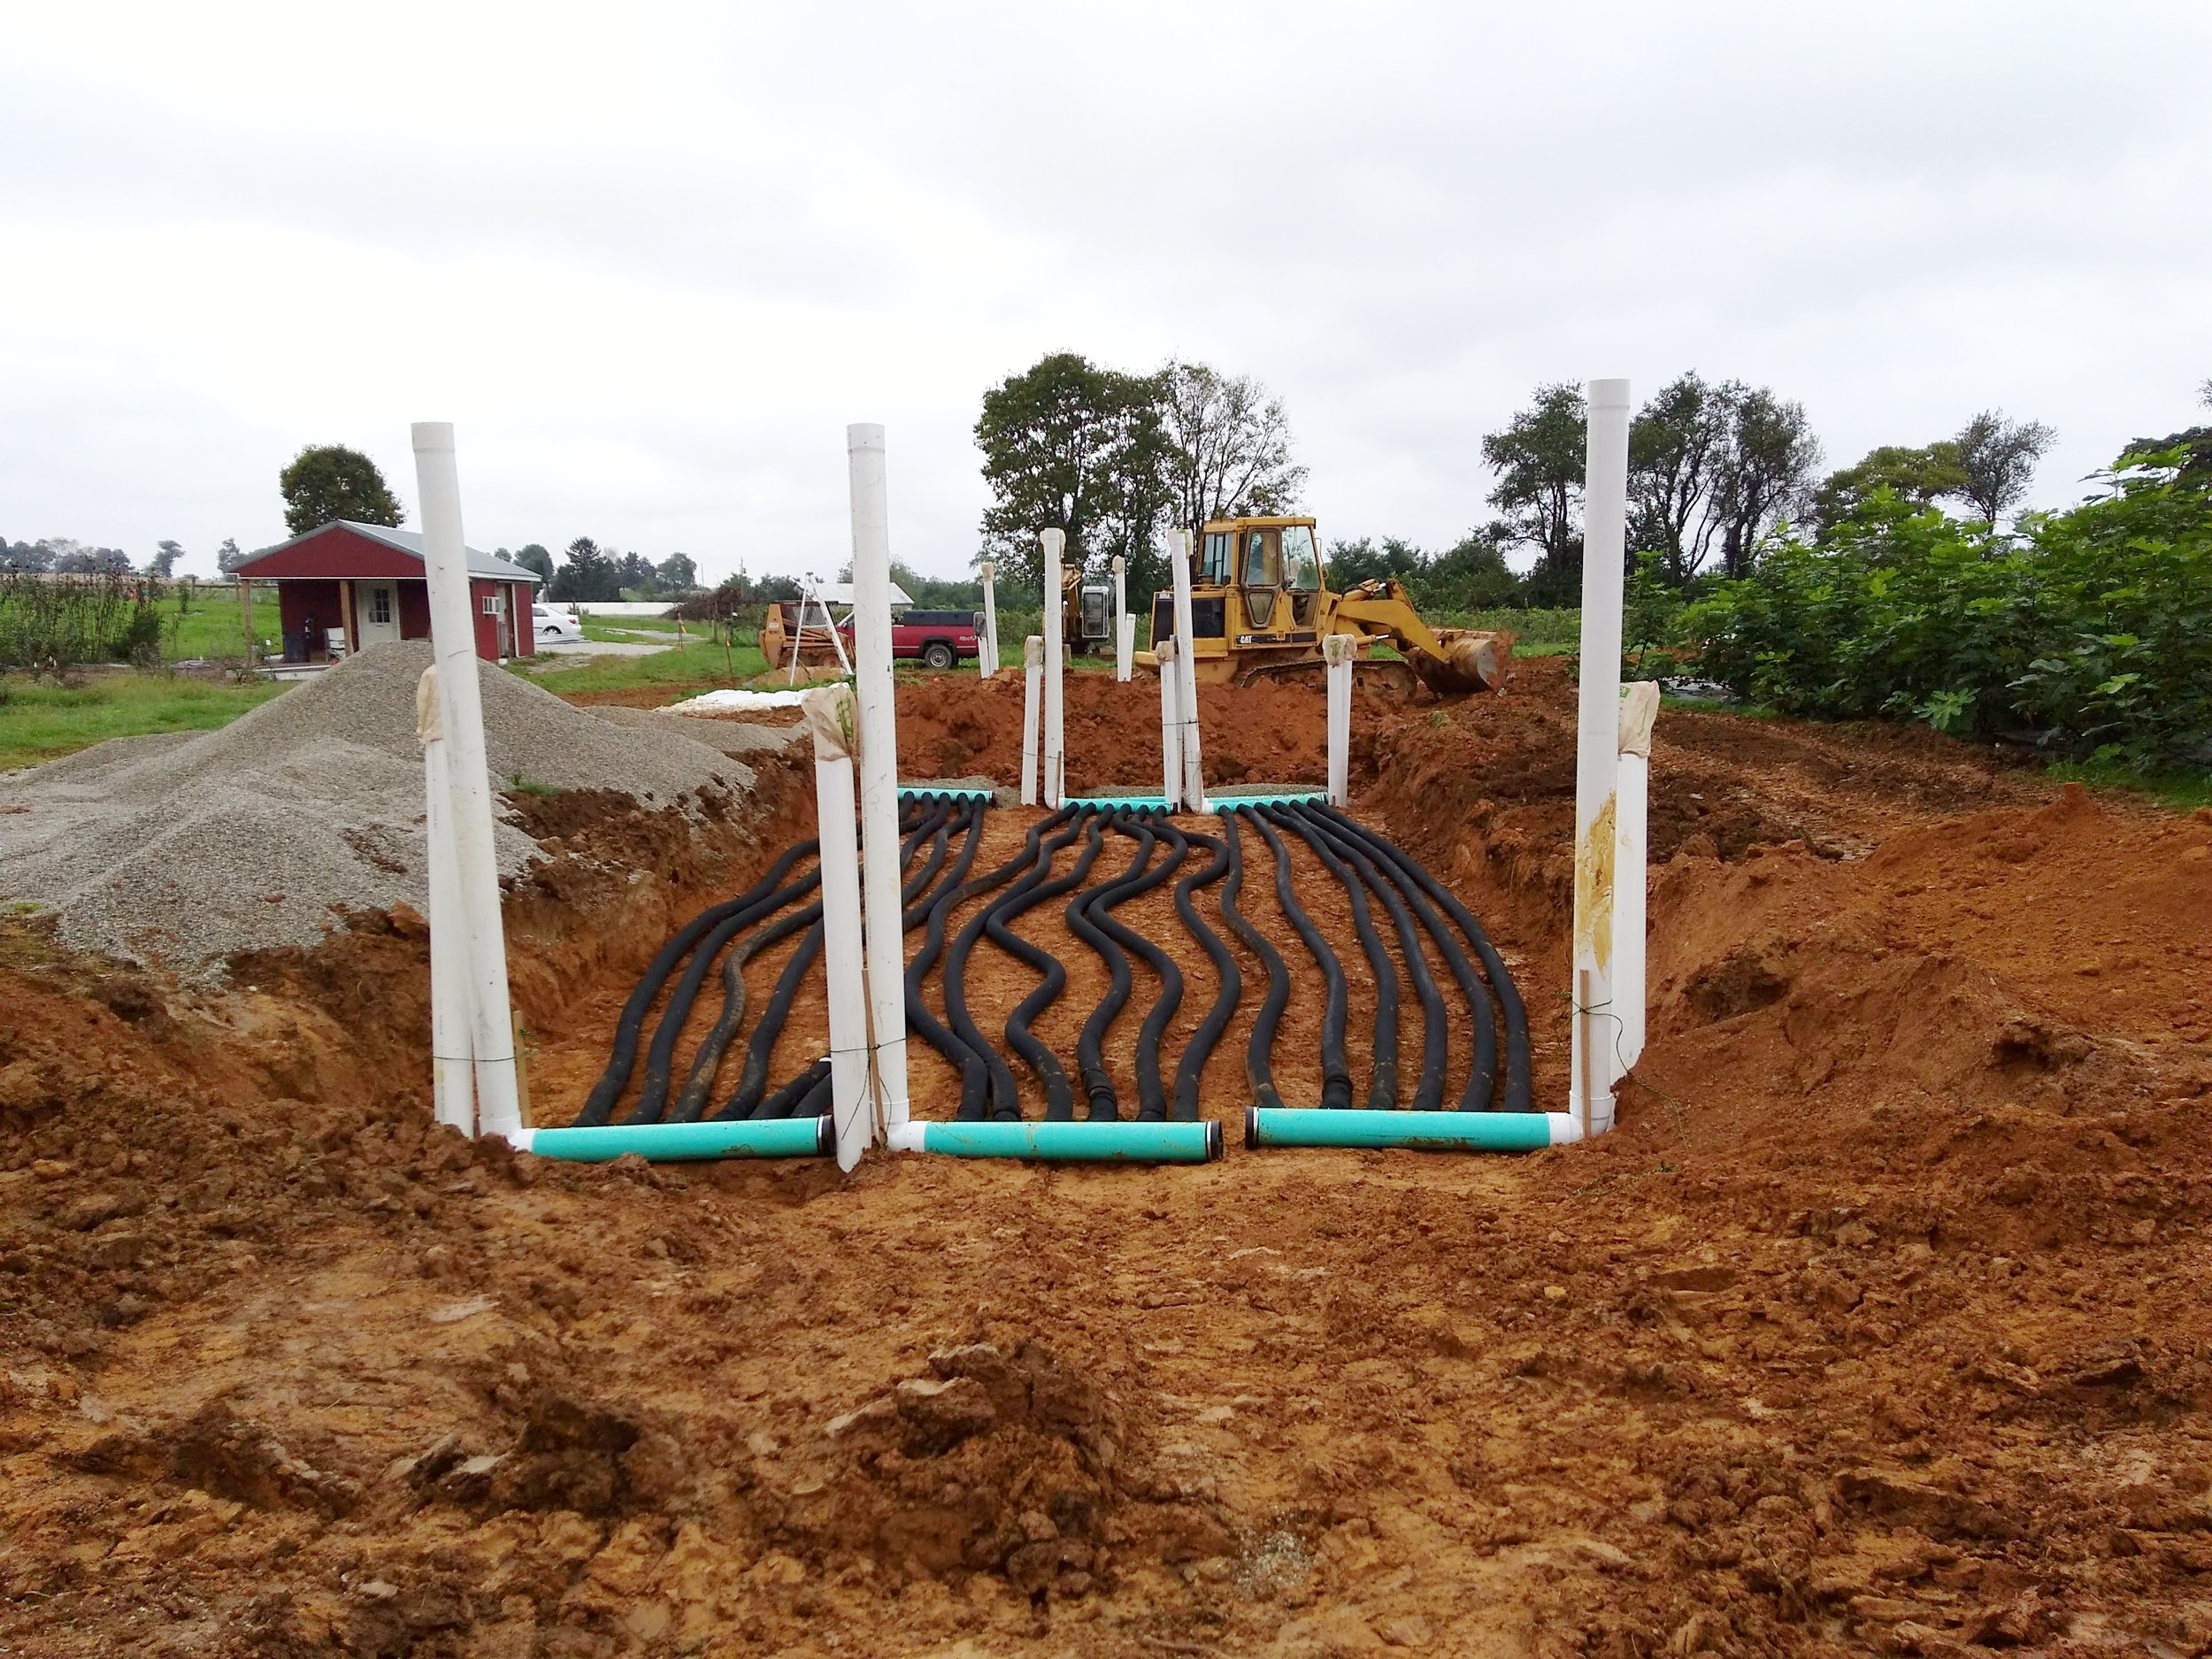 Hole backfilled to 3 feet with the second layer of tubing partially covered. Here you can see the lower risers partially buried. Risers were positioned to allow for tractor entry into the greenhouse.